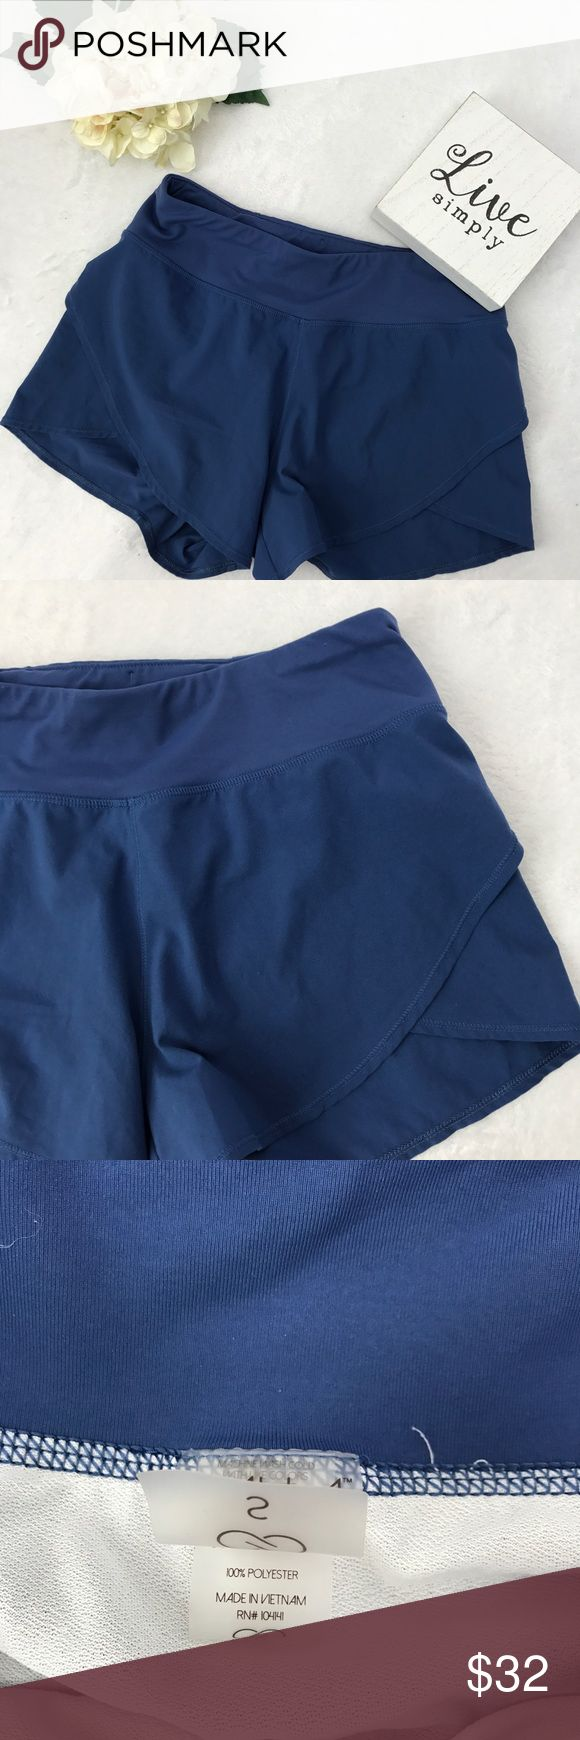 {Calia} Running Shorts Solid Lined Excellent condition! Inseam is 3 inches. Waist 14 inches across. 100% polyester. Great for running, yoga, or hiking. No trades, modeling, or lowballs please 😘 CALIA by Carrie Underwood Shorts